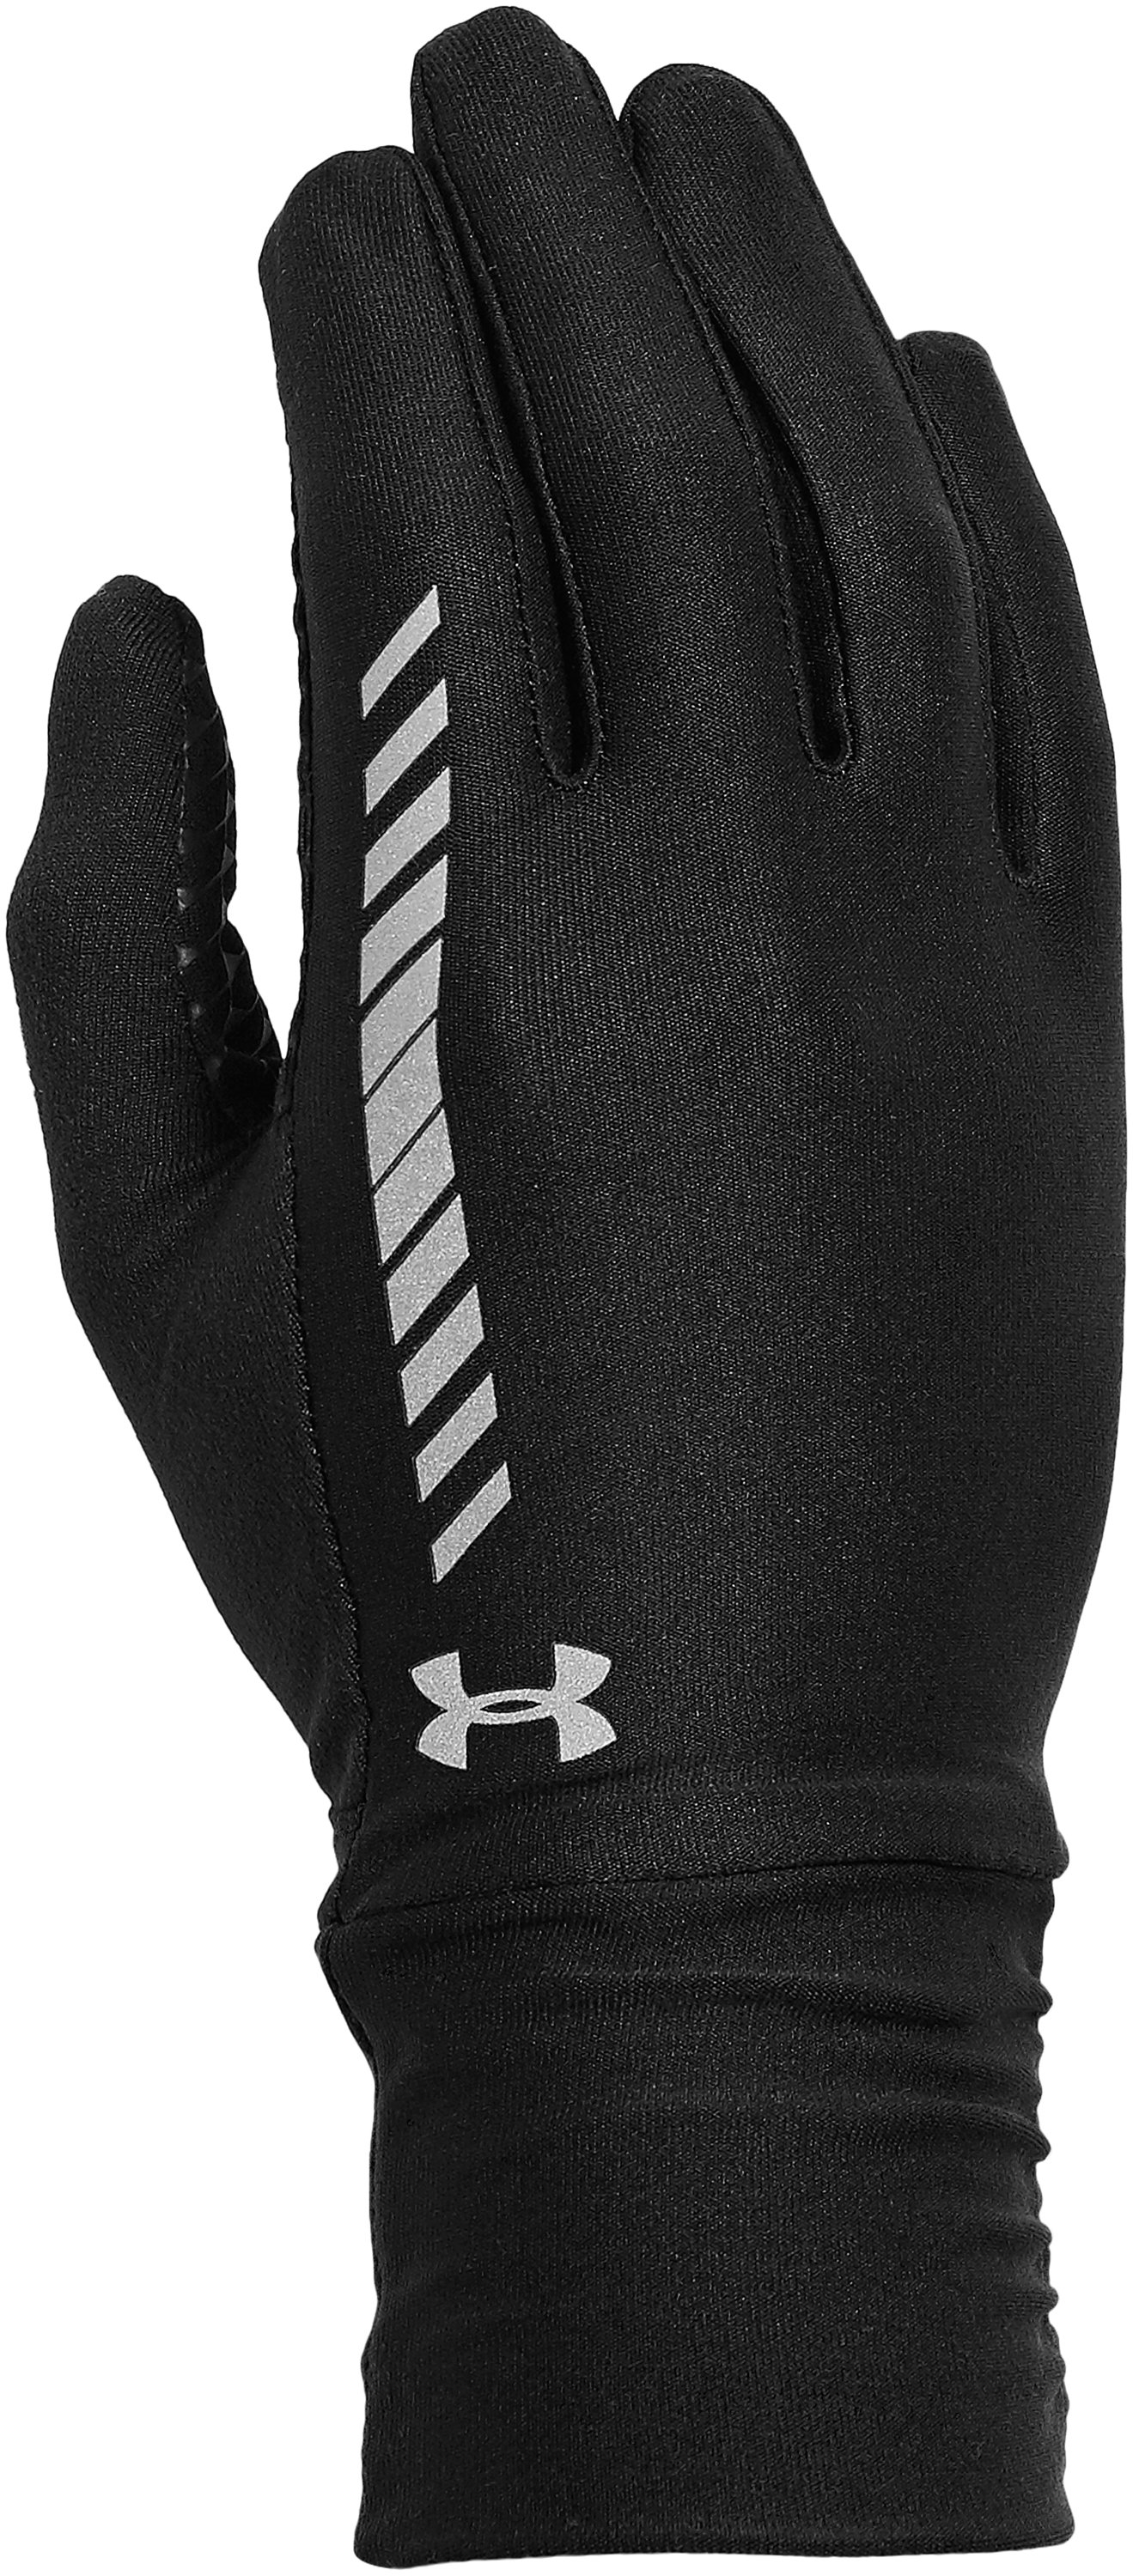 Women's UA Layered Up! Liner Glove, Black